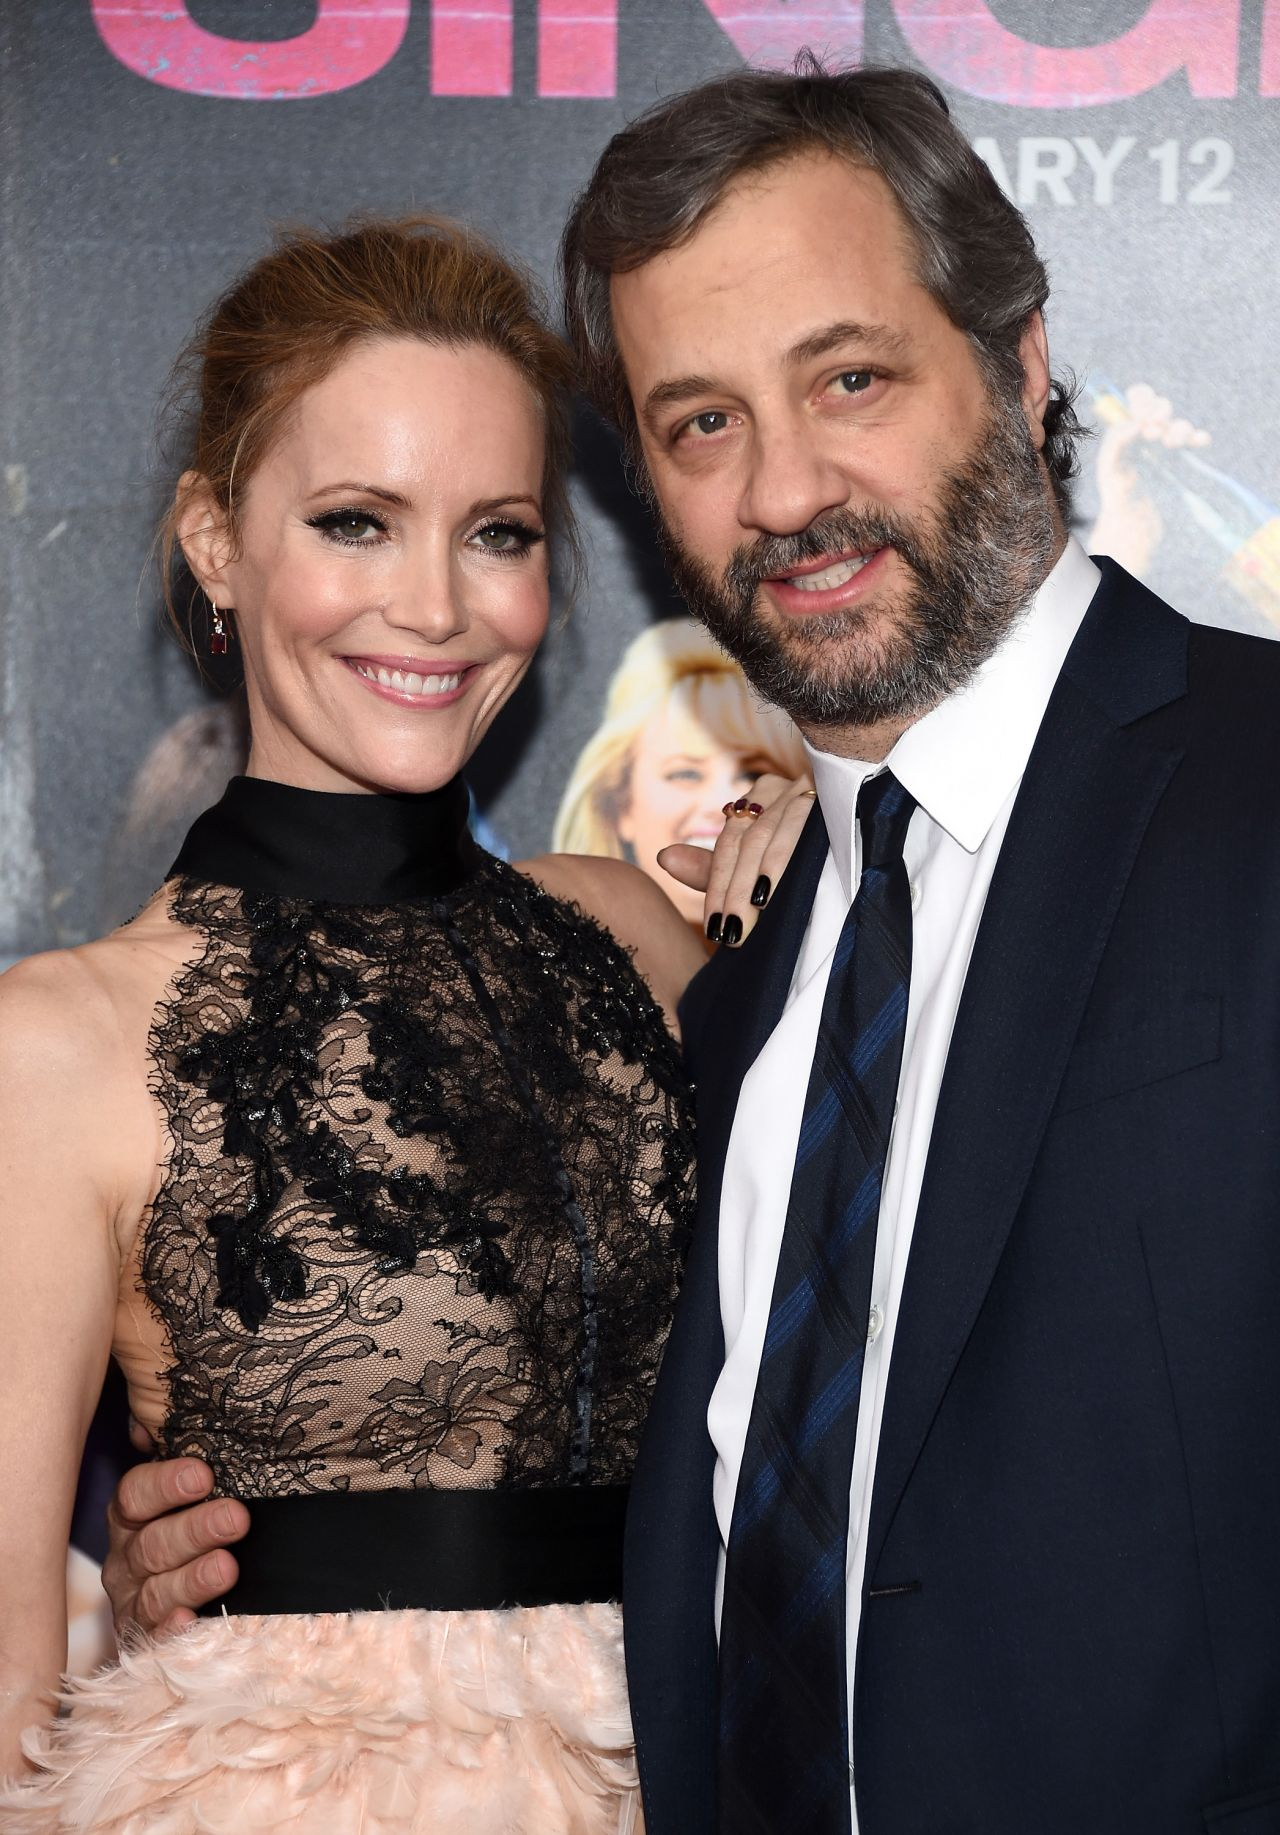 Leslie Mann €� 'how To Be Single' Premiere In New York City